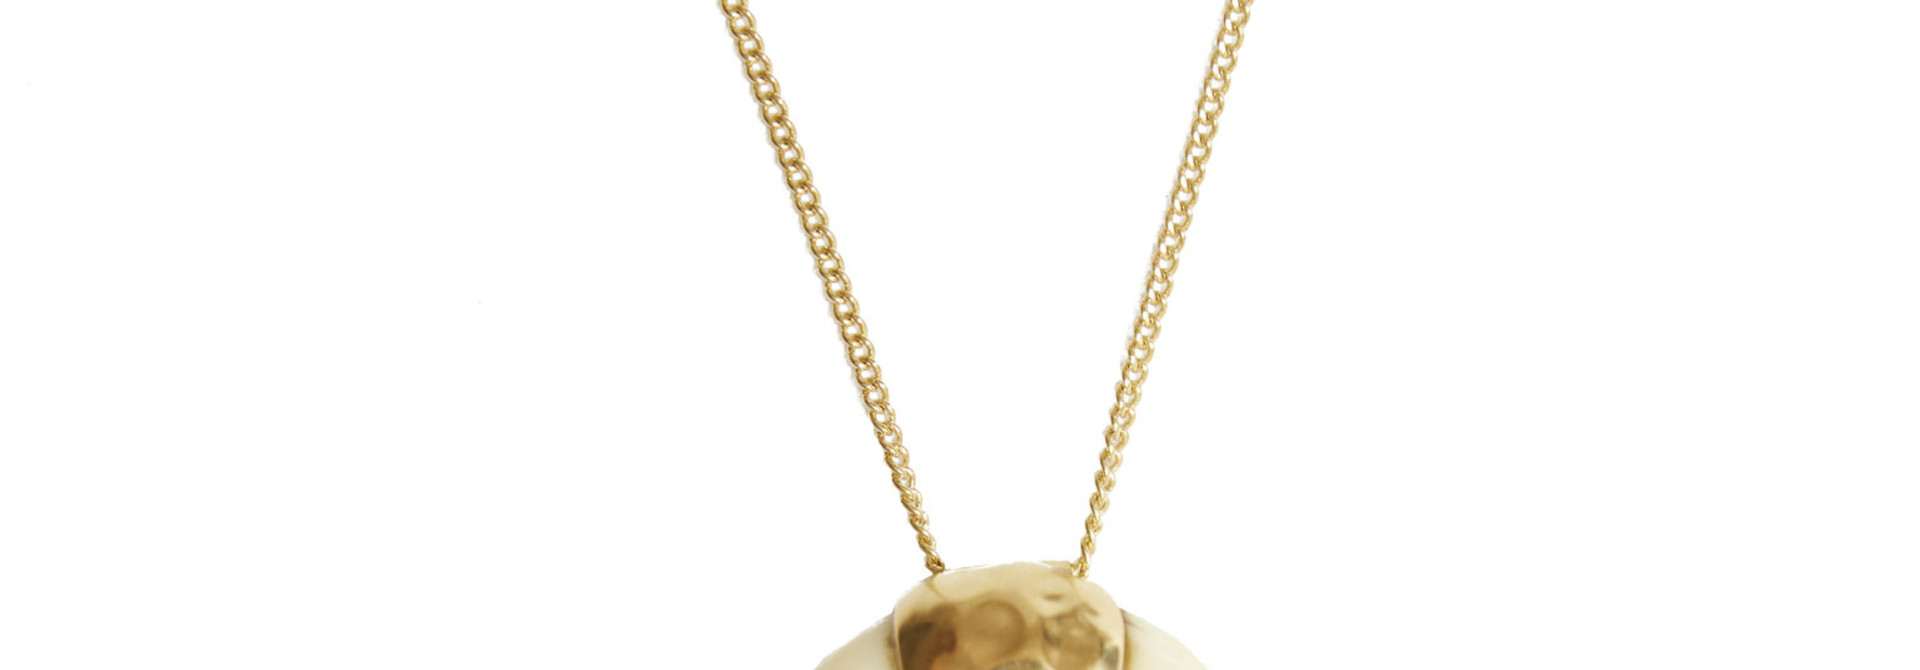 lune miracle blanche necklace